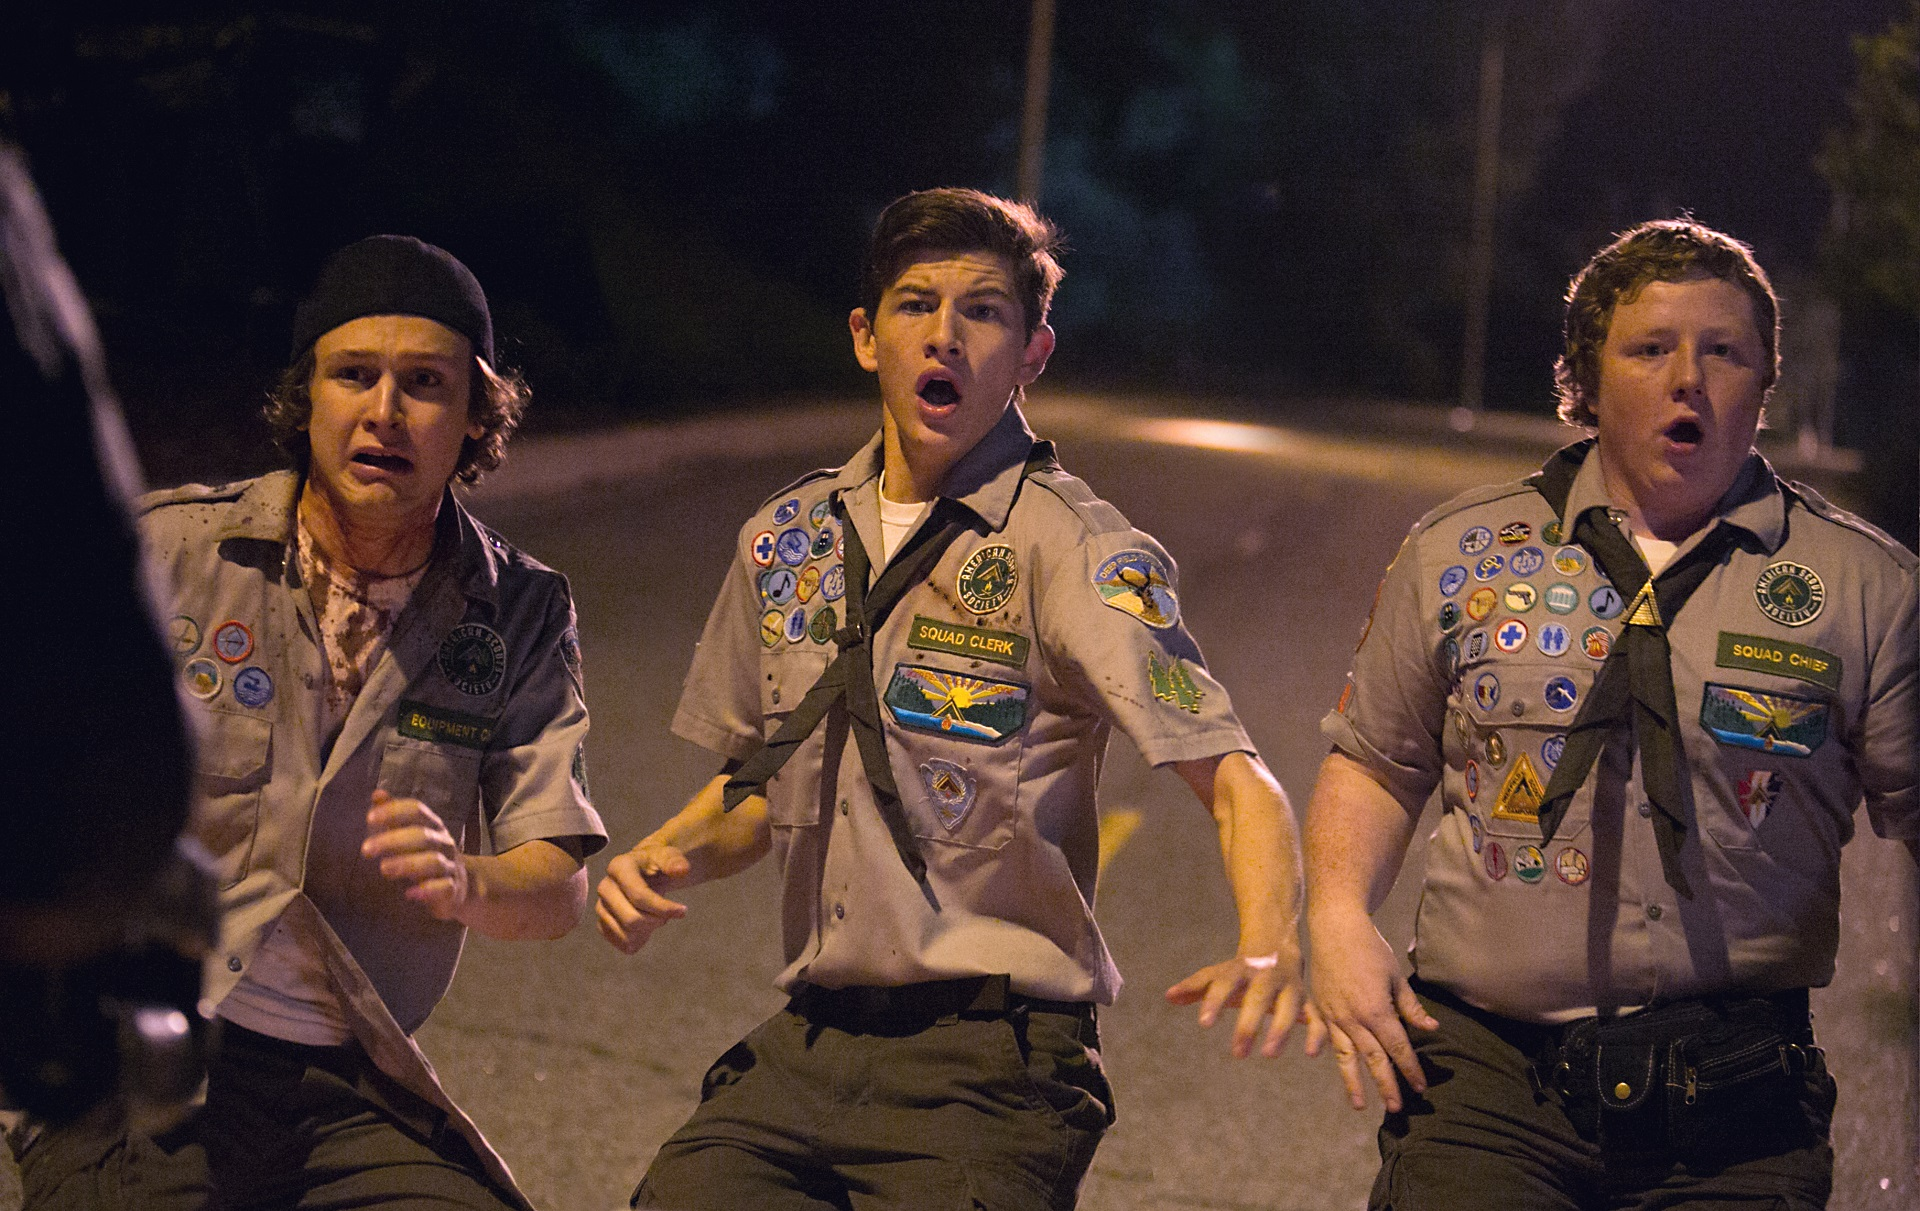 Boy scouts (l to r) Logan Miller, Tye Sheridan, Joey Morgan in Scouts Guide to the Zombie Apocalypse (2015)